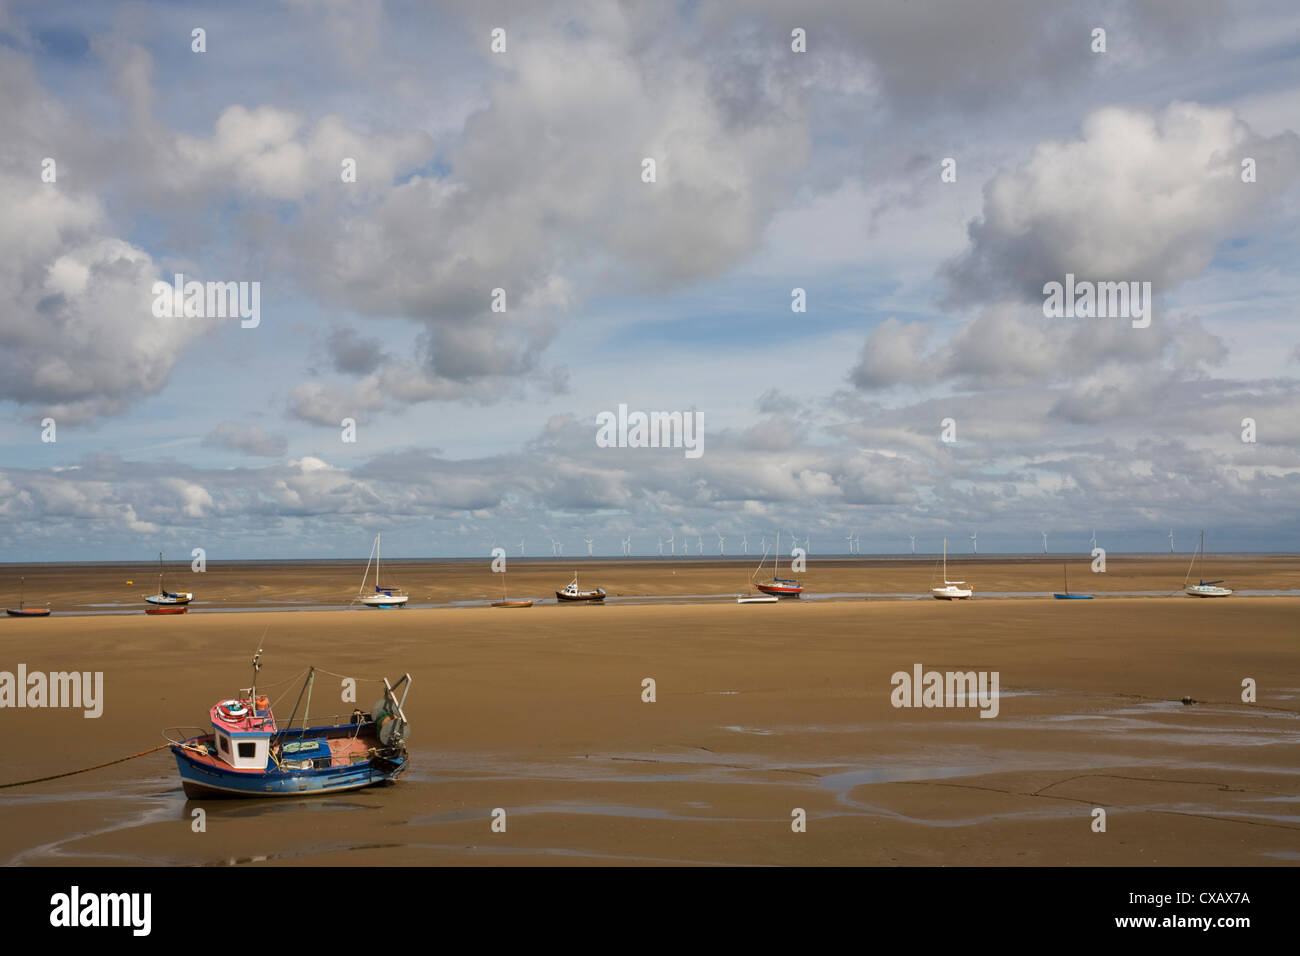 Boats on the beach near New Brighton, Wirral Peninsula, Merseyside, England, United Kingdom, Europe - Stock Image